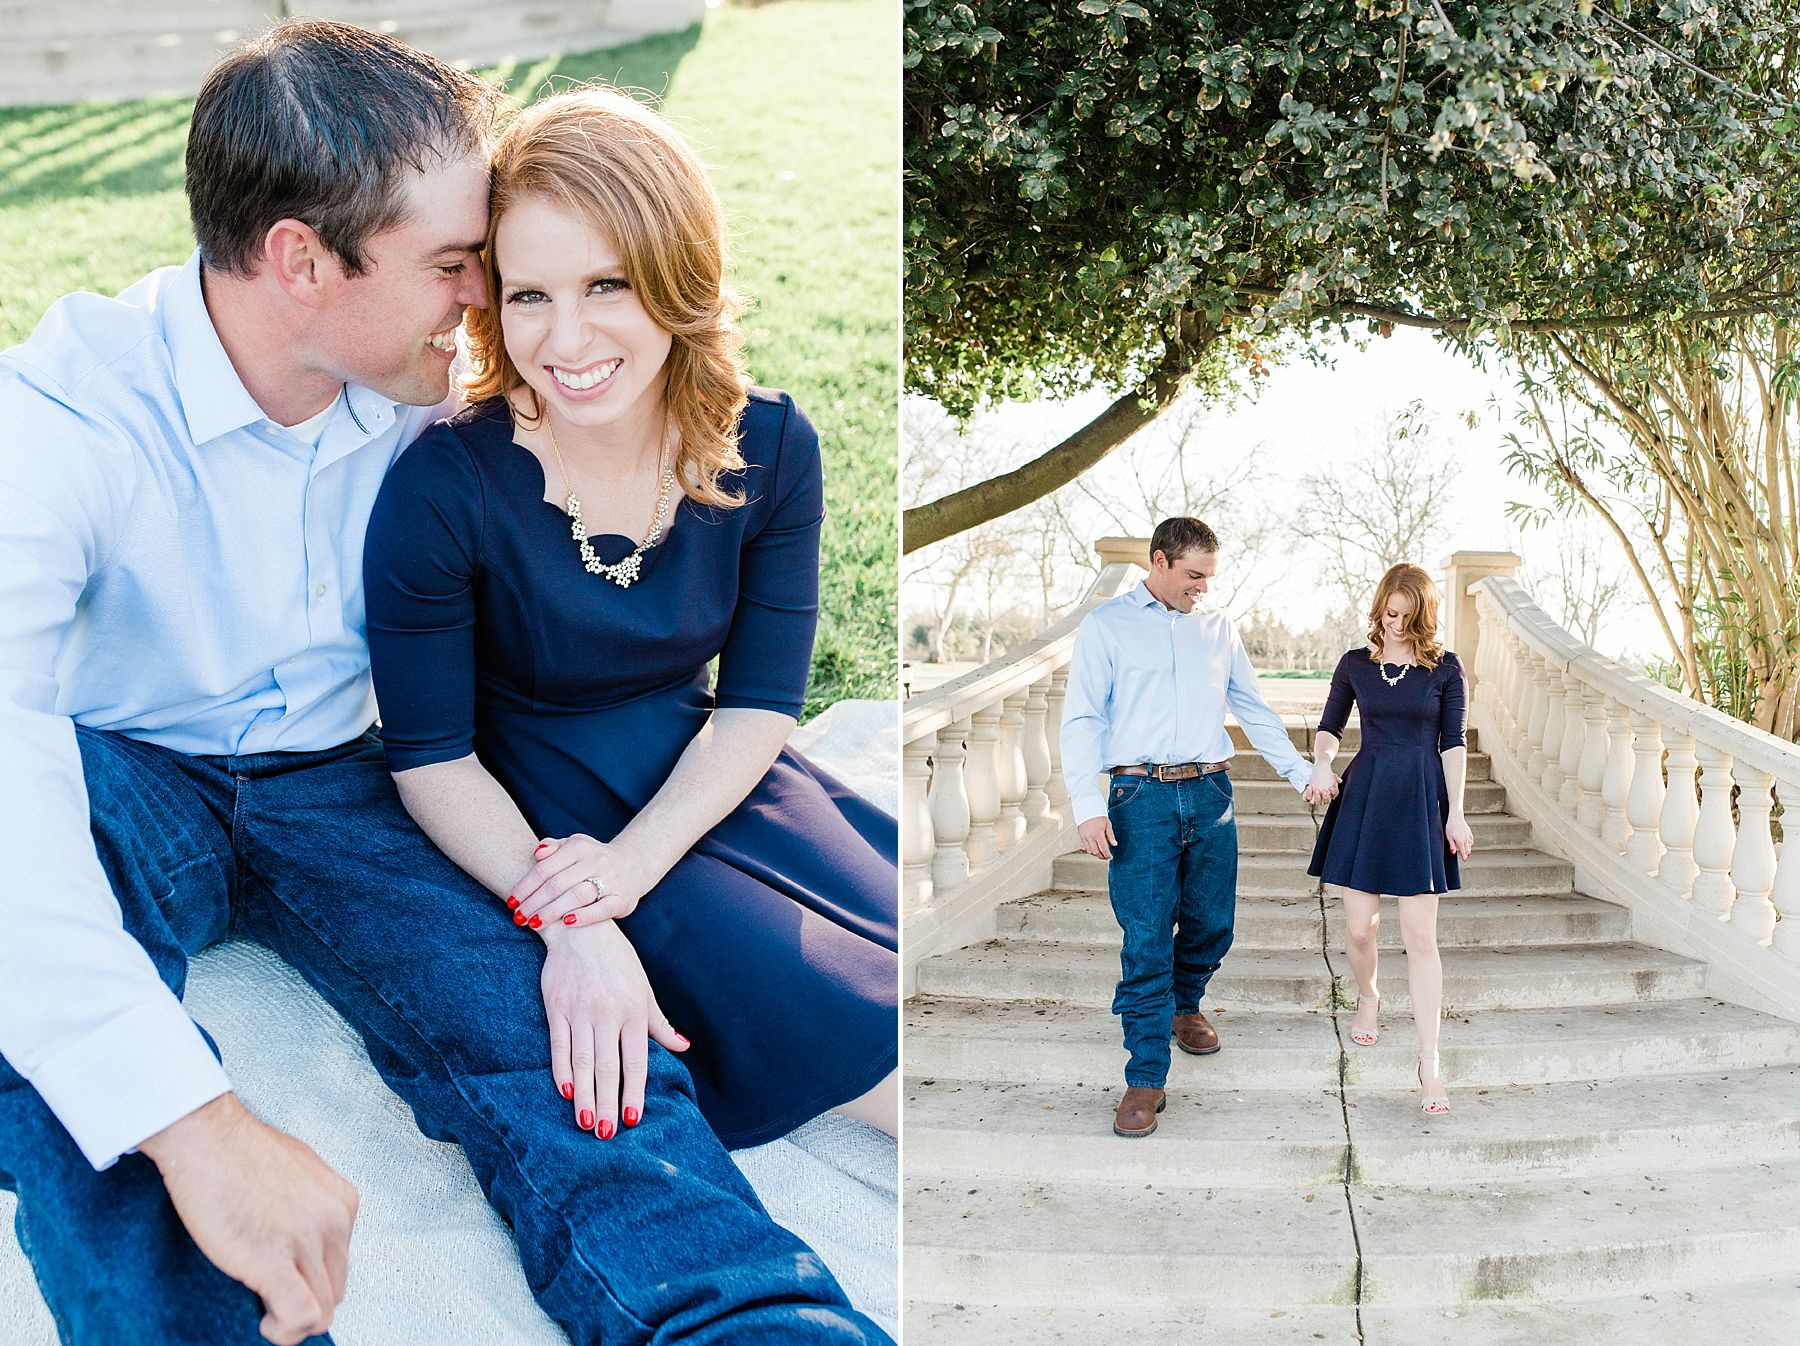 Viaggio Winery Engagement Session - Liz and TJ - Lodi Winery Wedding Photographer_0006.jpg